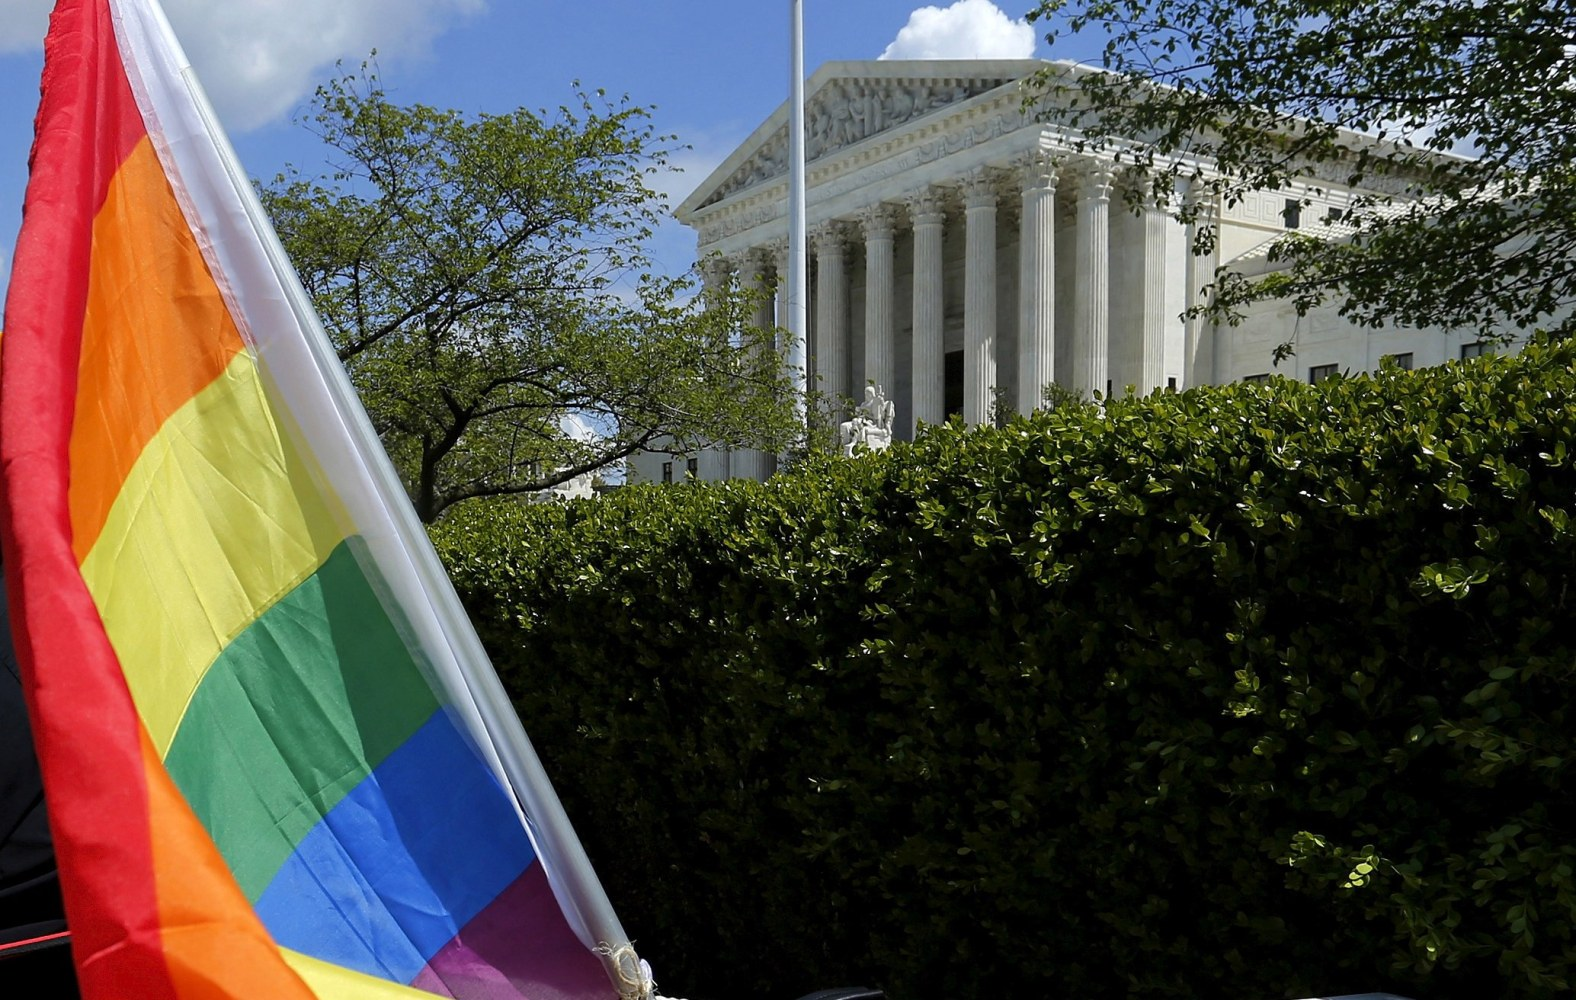 Texas Supreme Court throws out same-sex marriage ruling